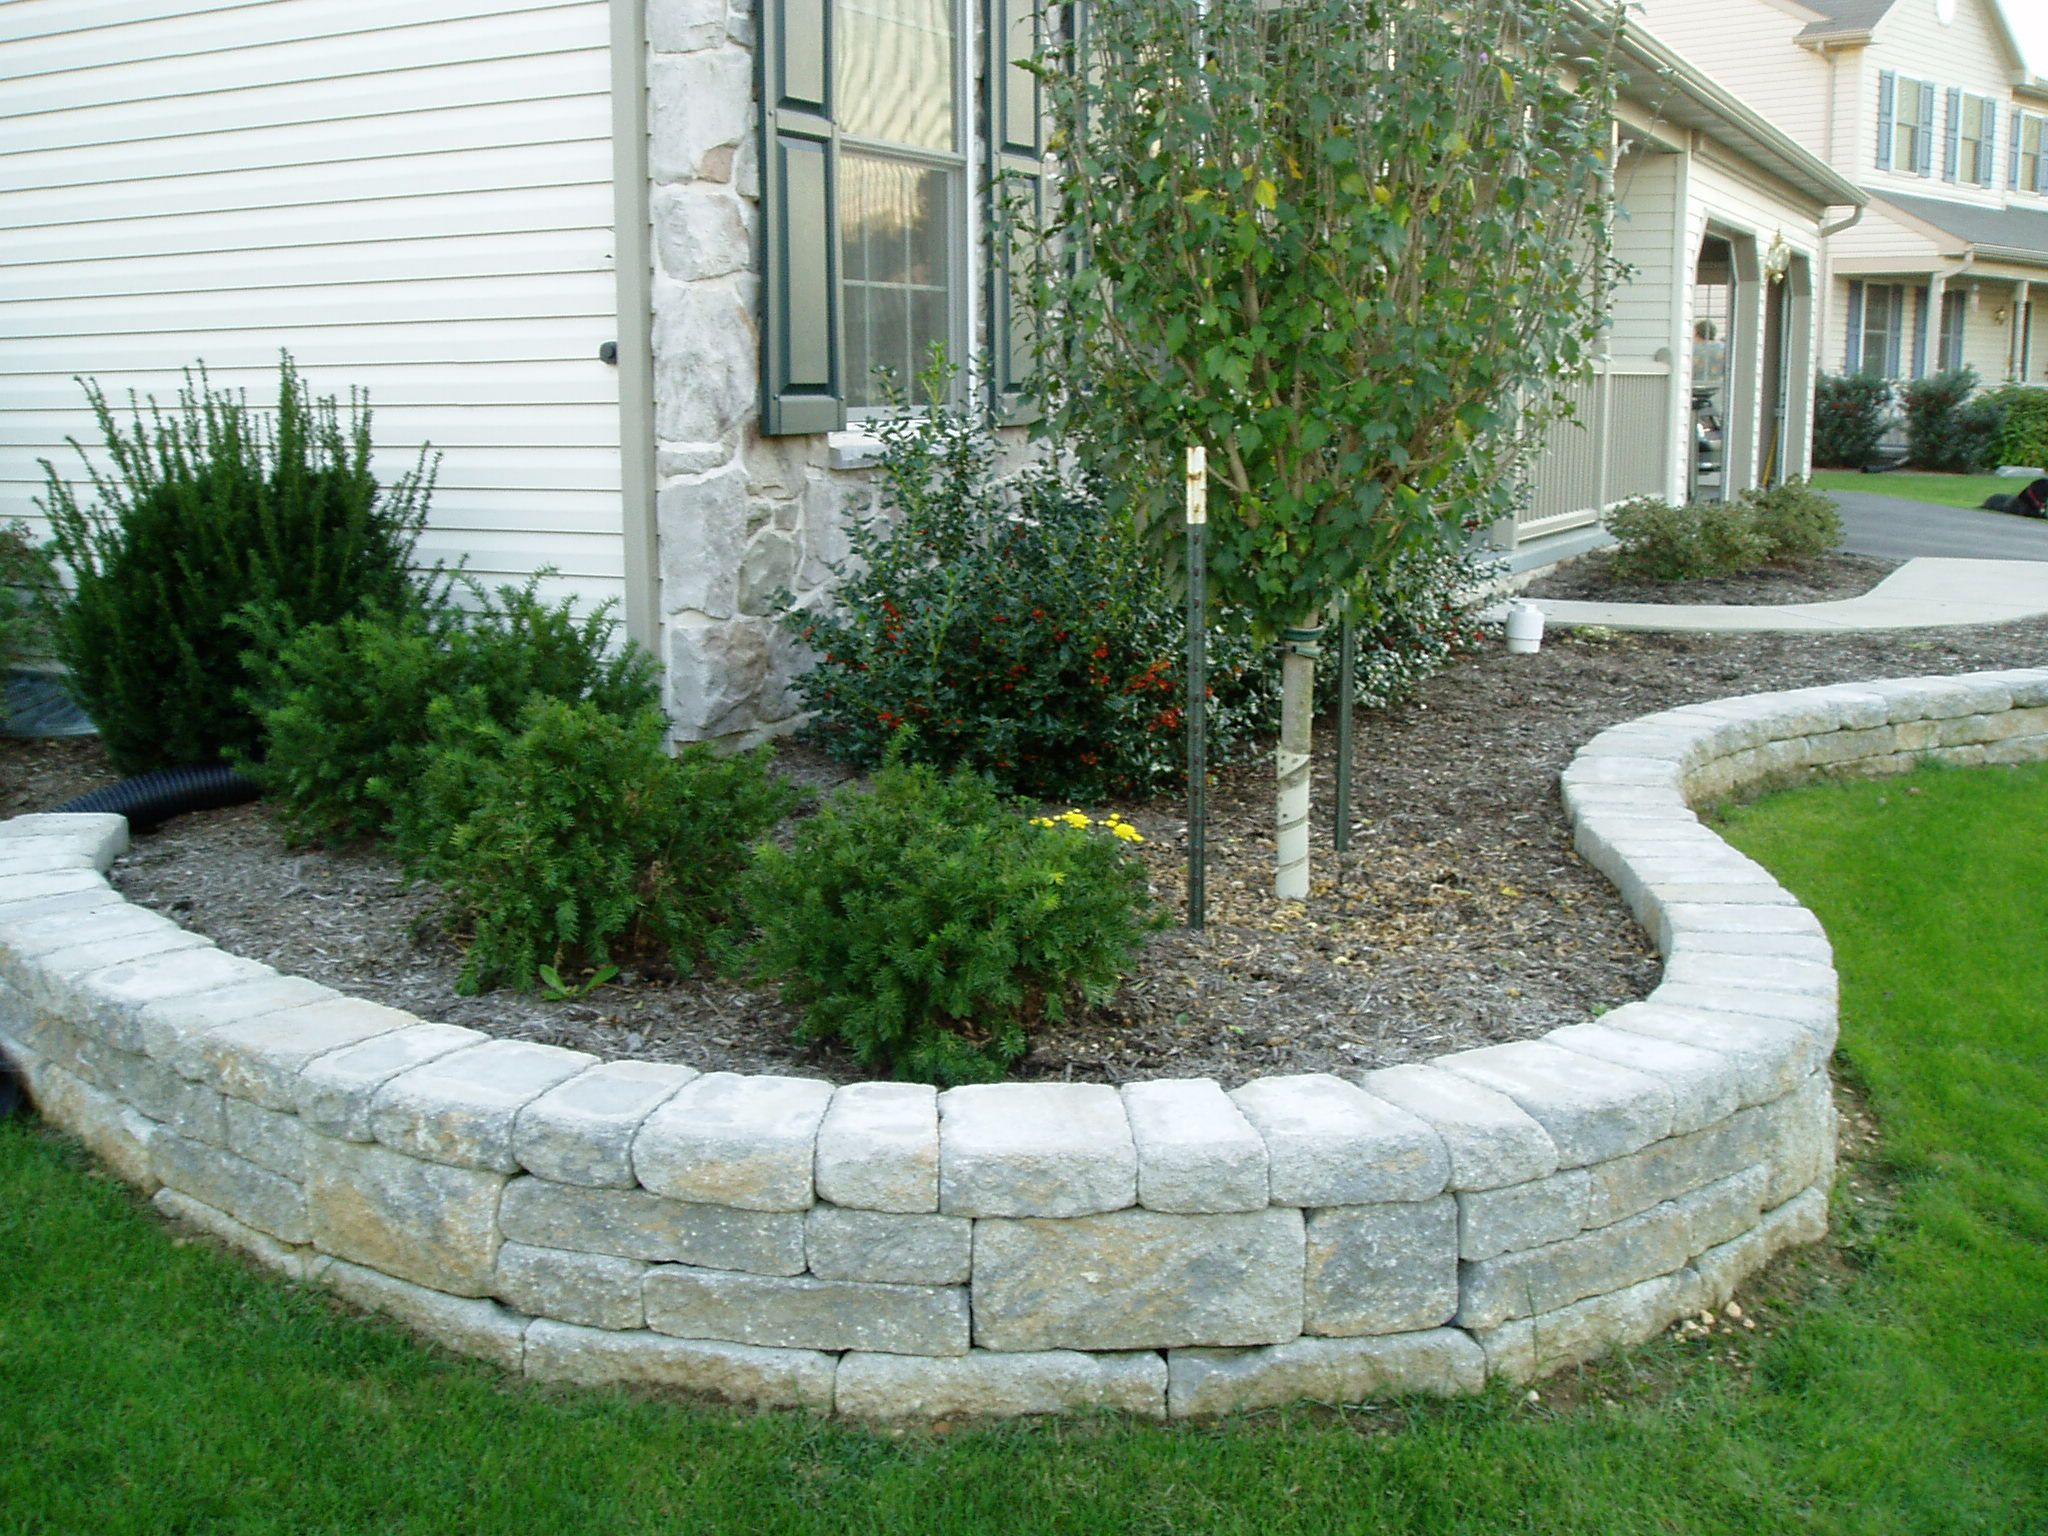 Landscaping outdoor space pinterest landscaping for Garden wall idea